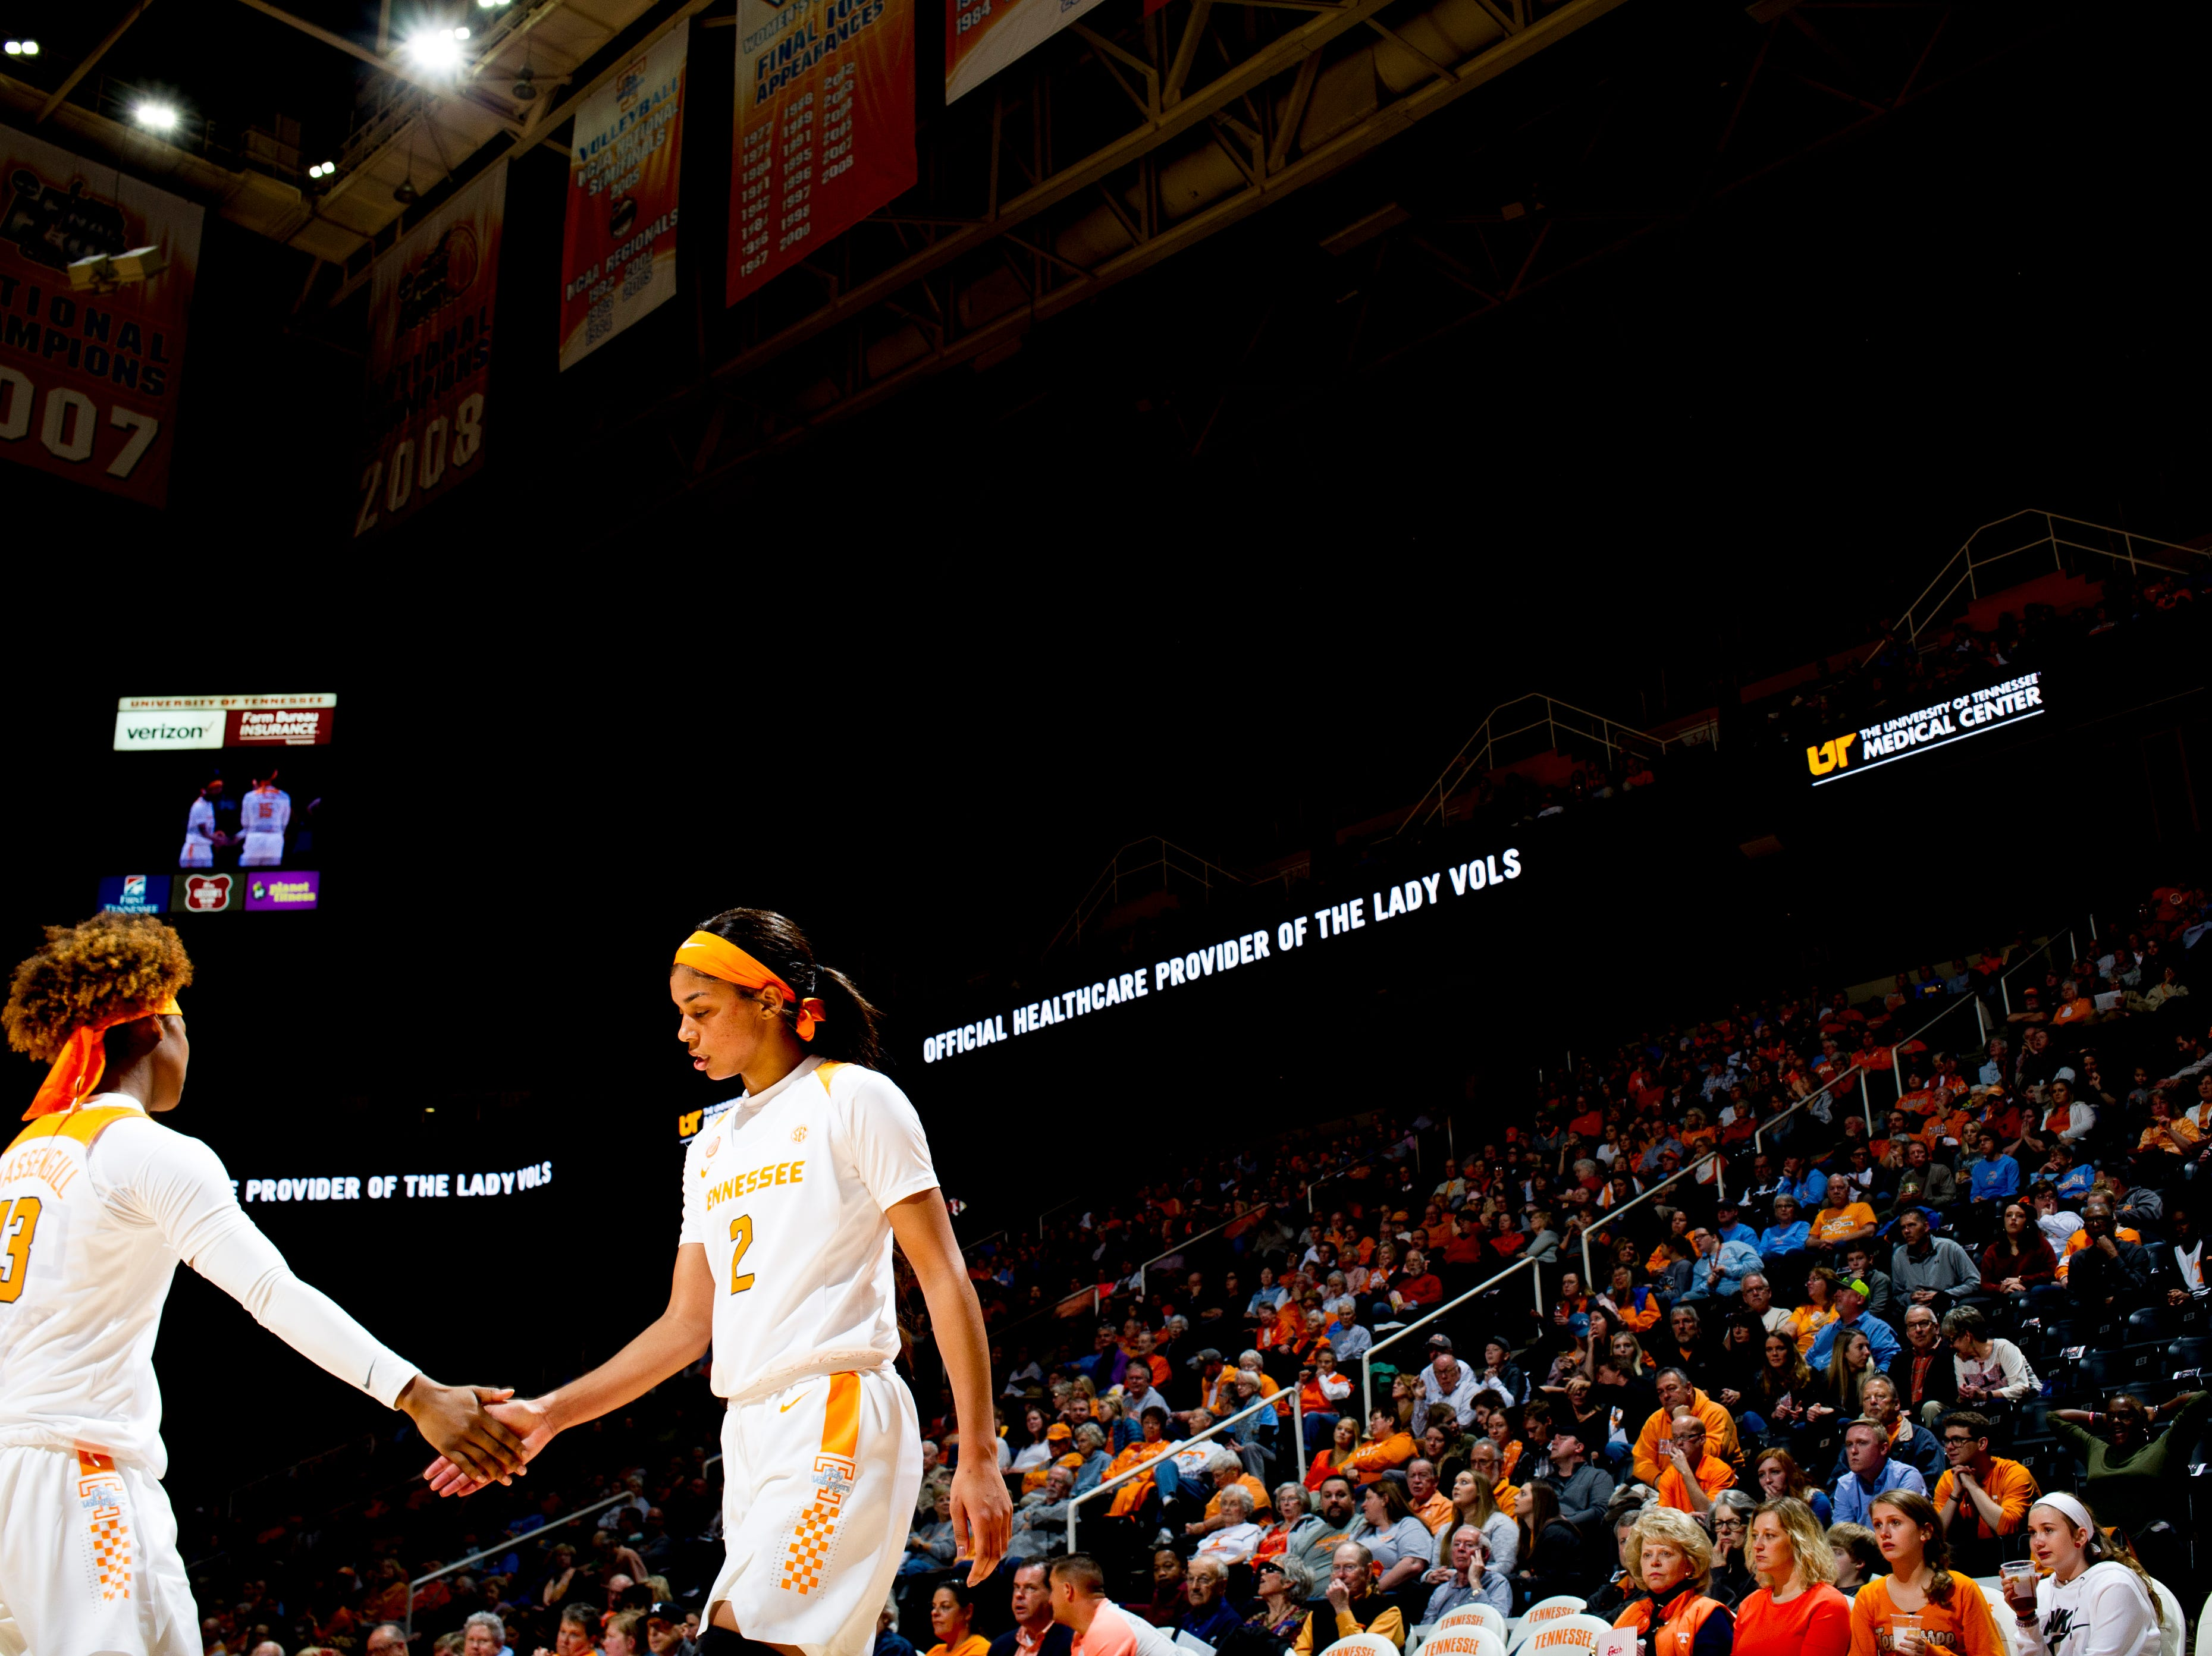 Tennessee guard Evina Westbrook (2) high fives Tennessee guard Jazmine Massengill (13) during a game between the Tennessee Lady Vols and Murray State at Thompson-Boling Arena in Knoxville, Tennessee on Friday, December 28, 2018.